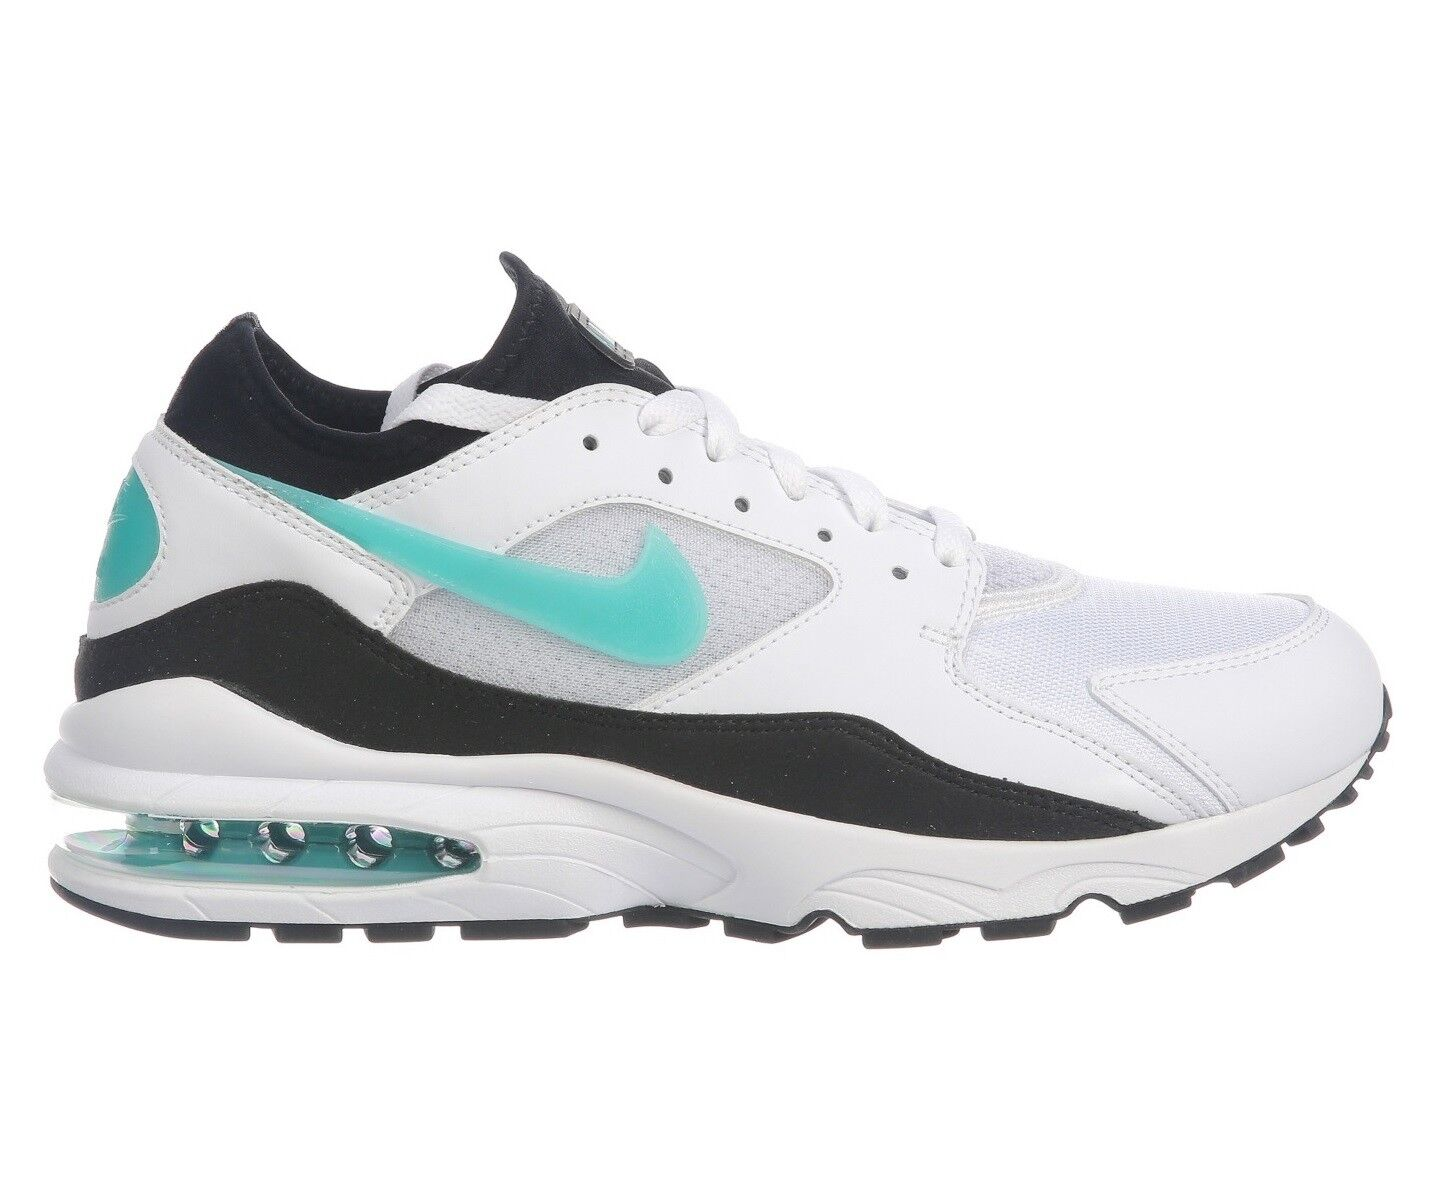 7eb912c791 Nike Air Max 93 Dusty Cactus Mens 306551-107 White Black Turquoise shoes Sz  9.5